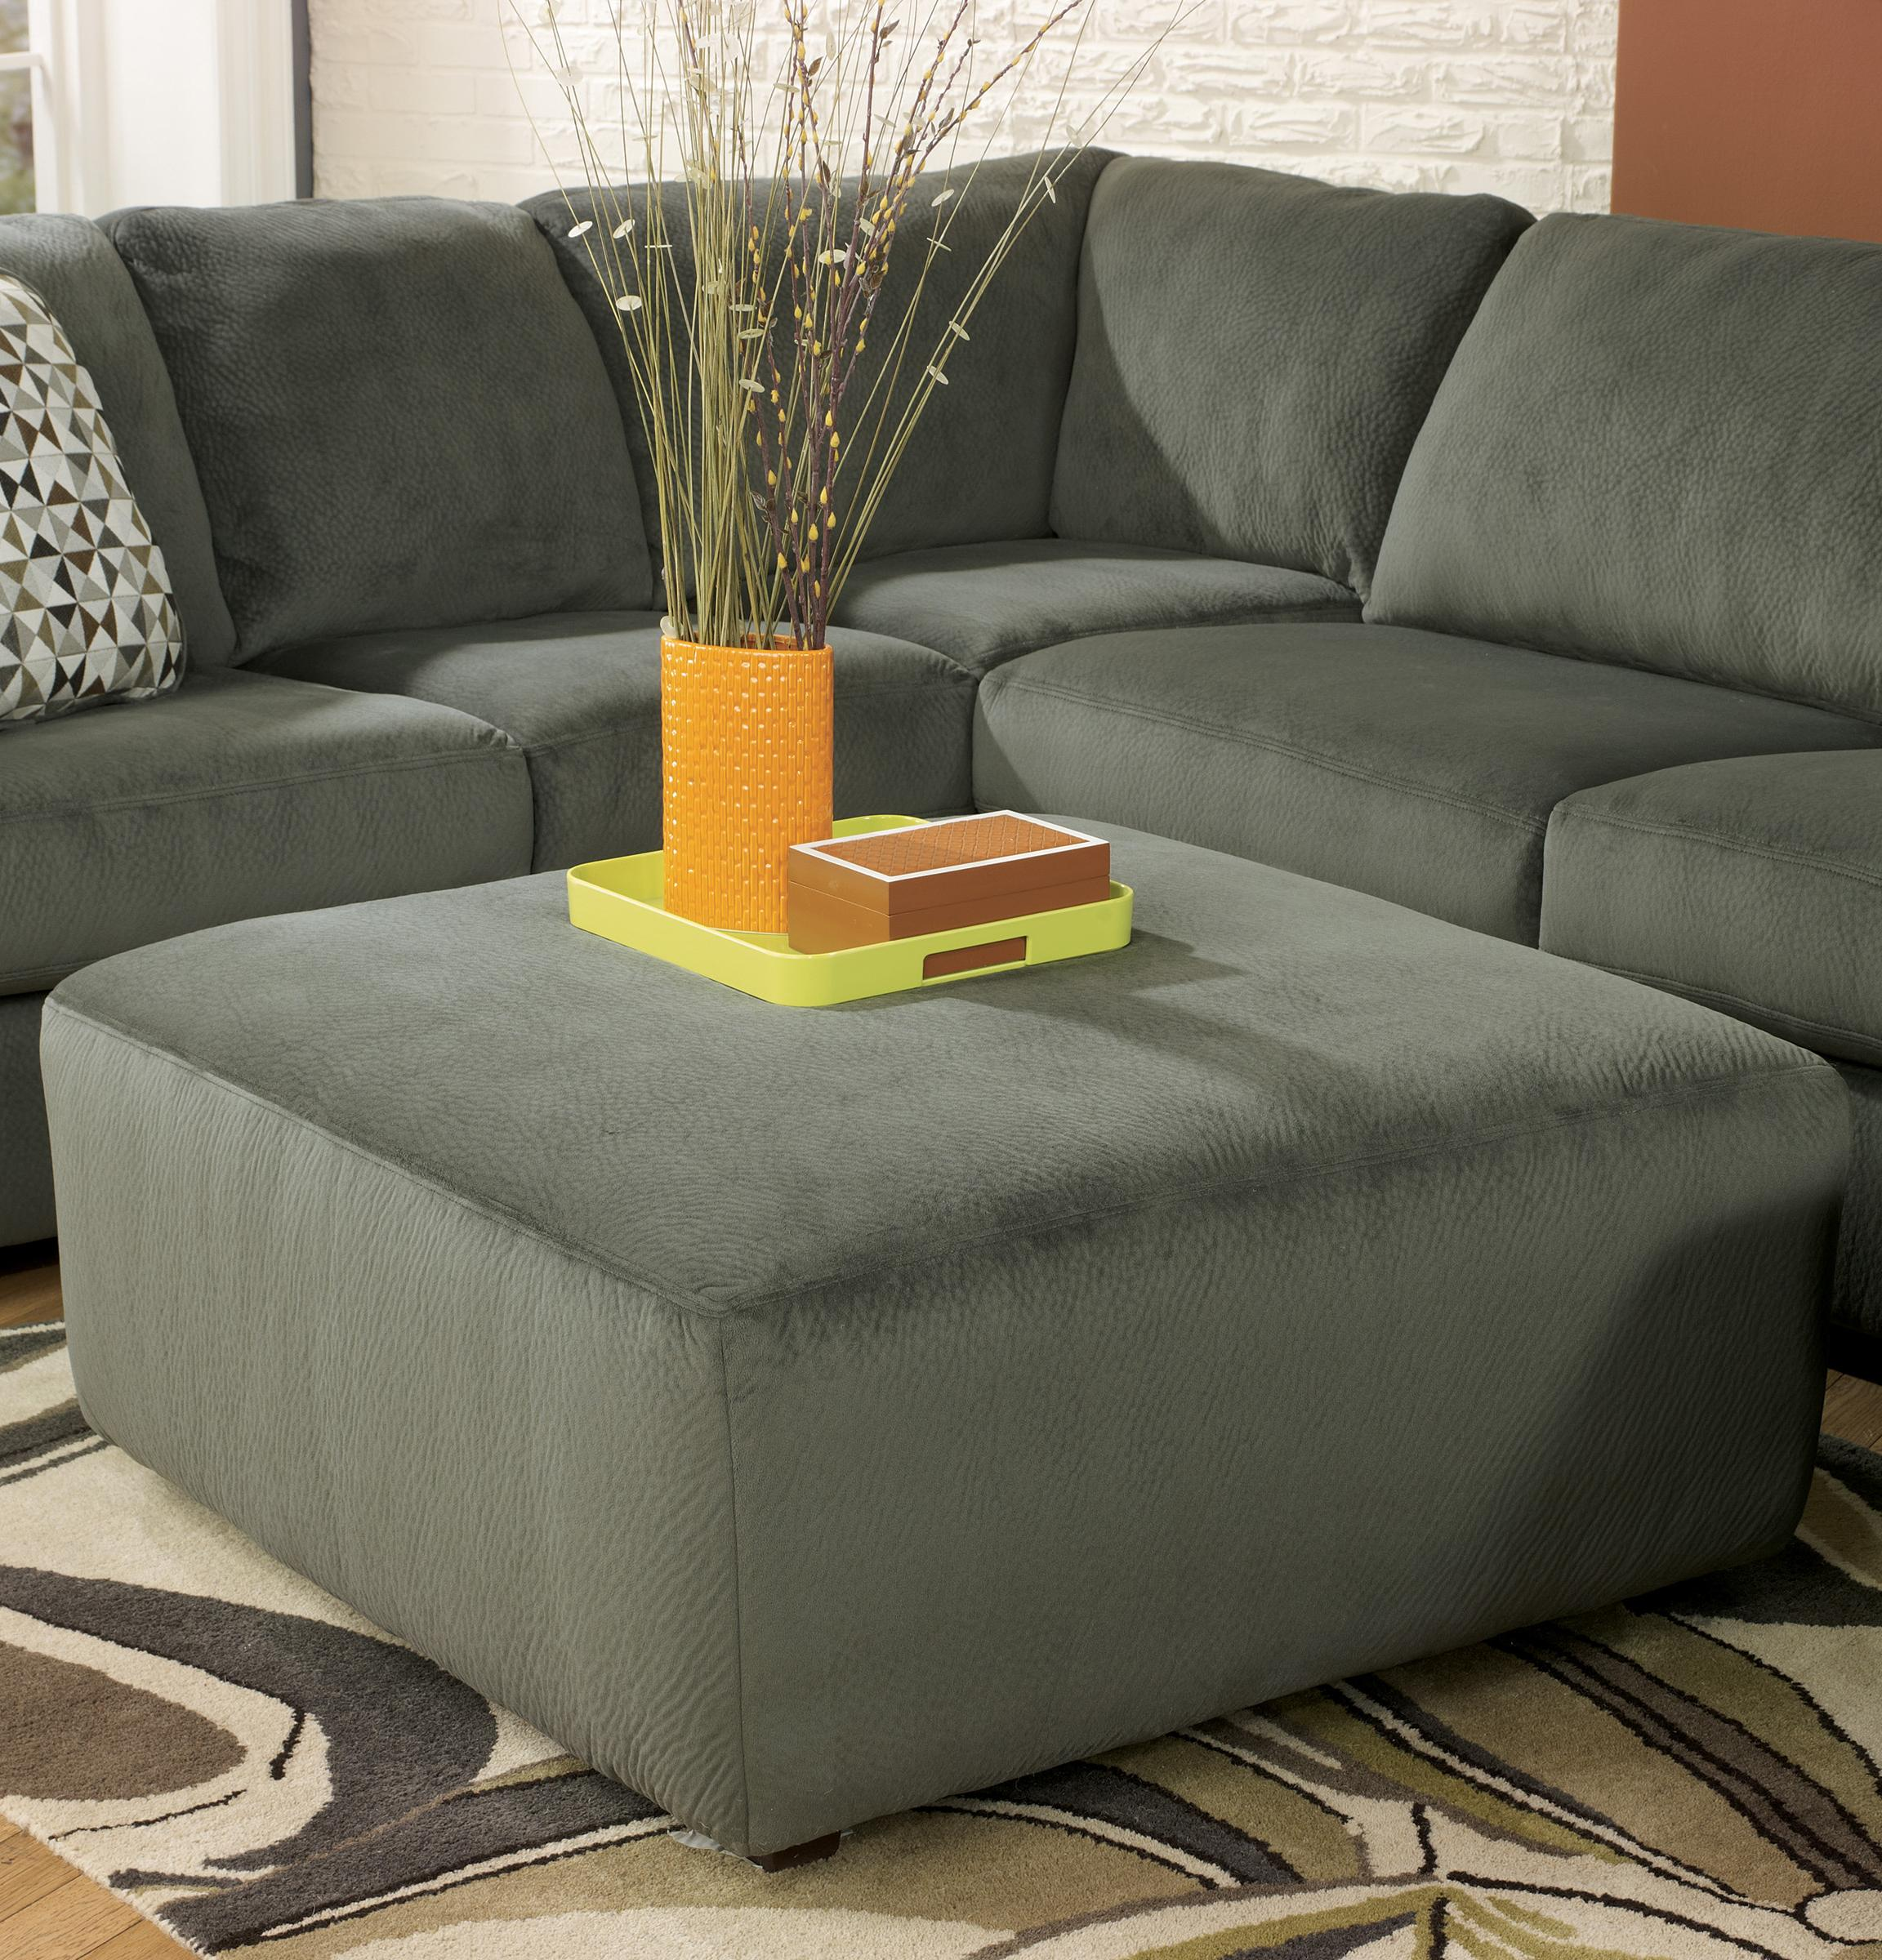 Signature Design by Ashley Jessa Place - Pewter Oversized Accent Ottoman - Item Number: 3980308